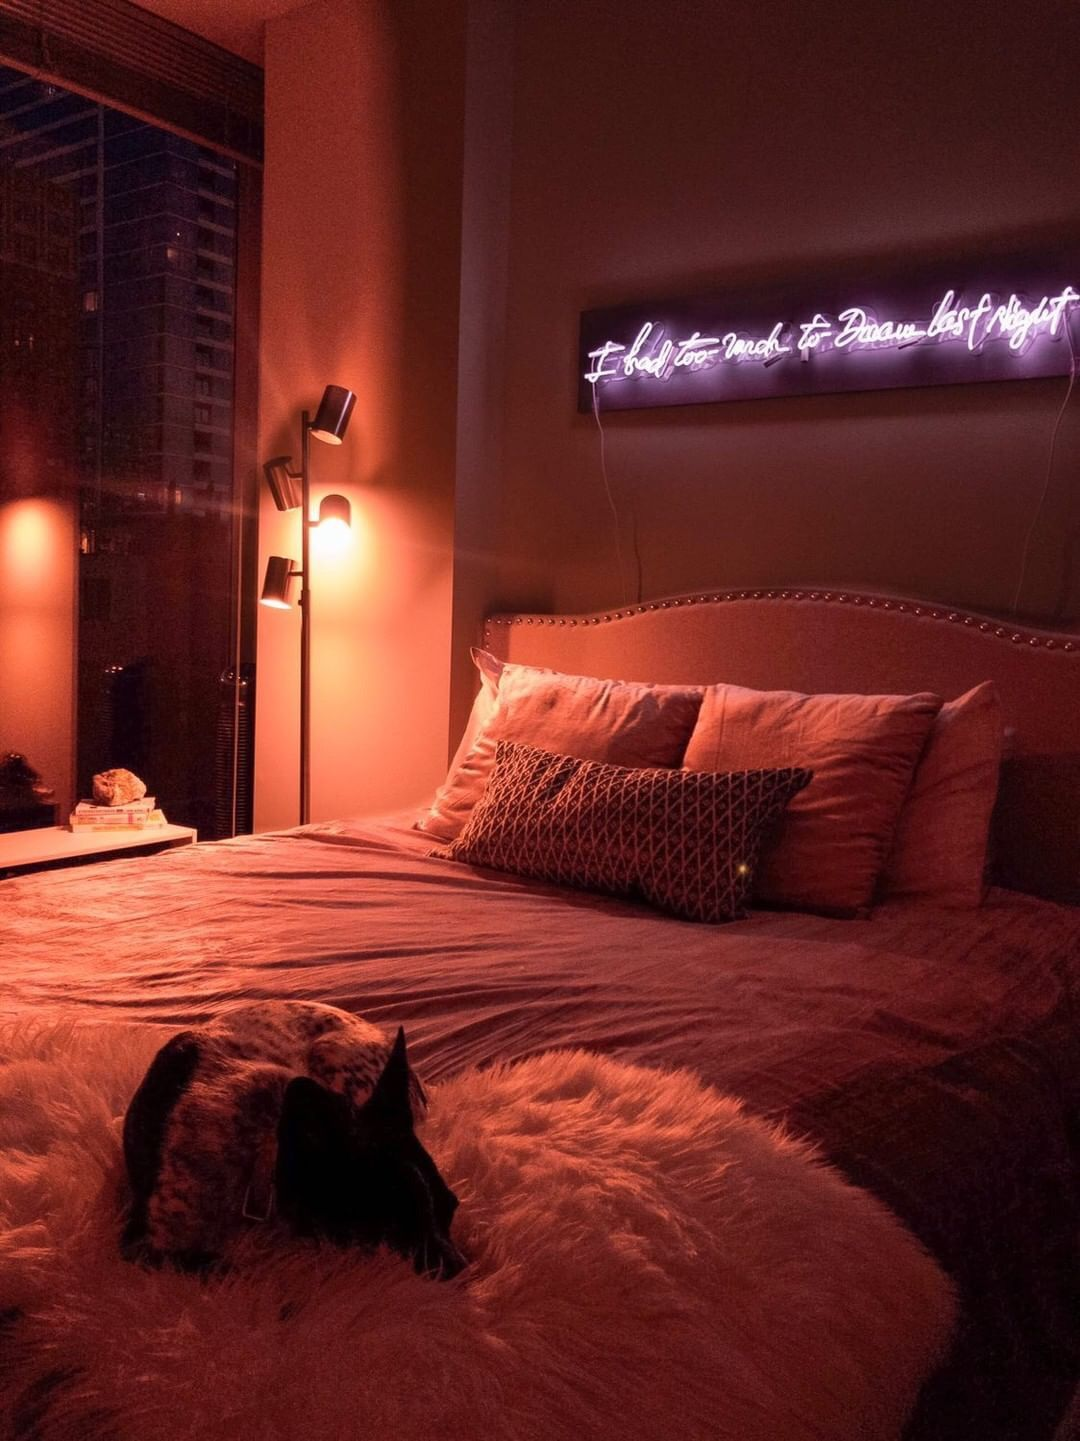 I had too much to dream last night Neon Sign Dreamy room